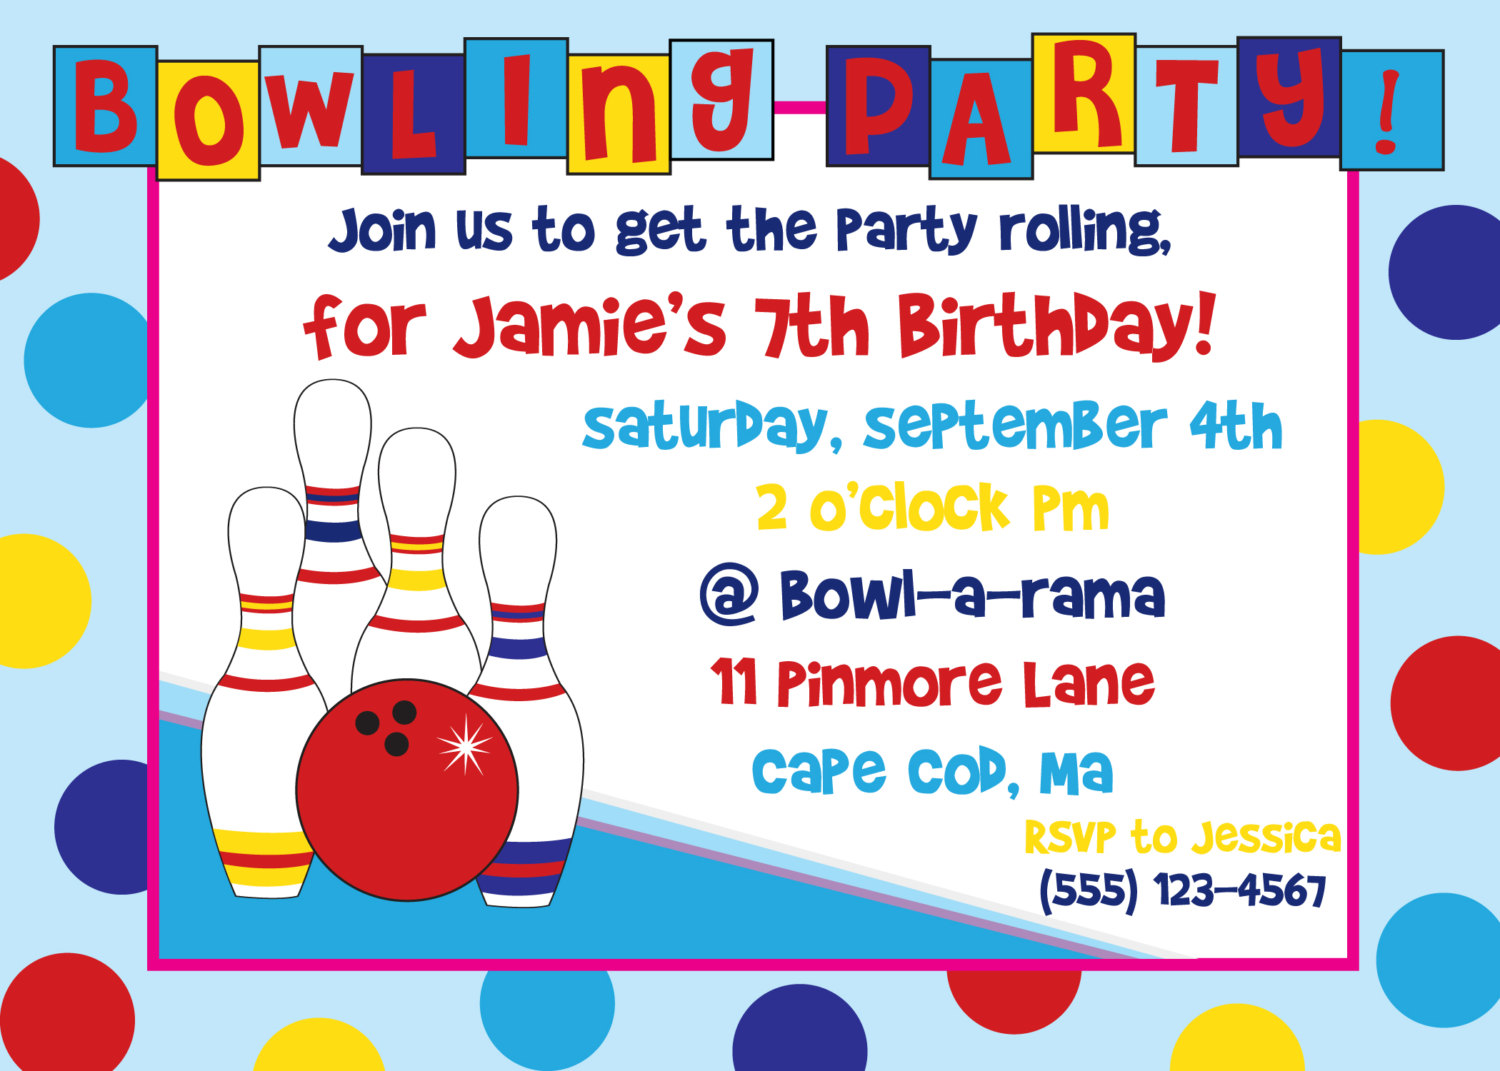 Free Ten Pin Bowling Invitation Templates: Free Printable Bowling Birthday  Invitation Templates ...  Birthday Invitation Free Template